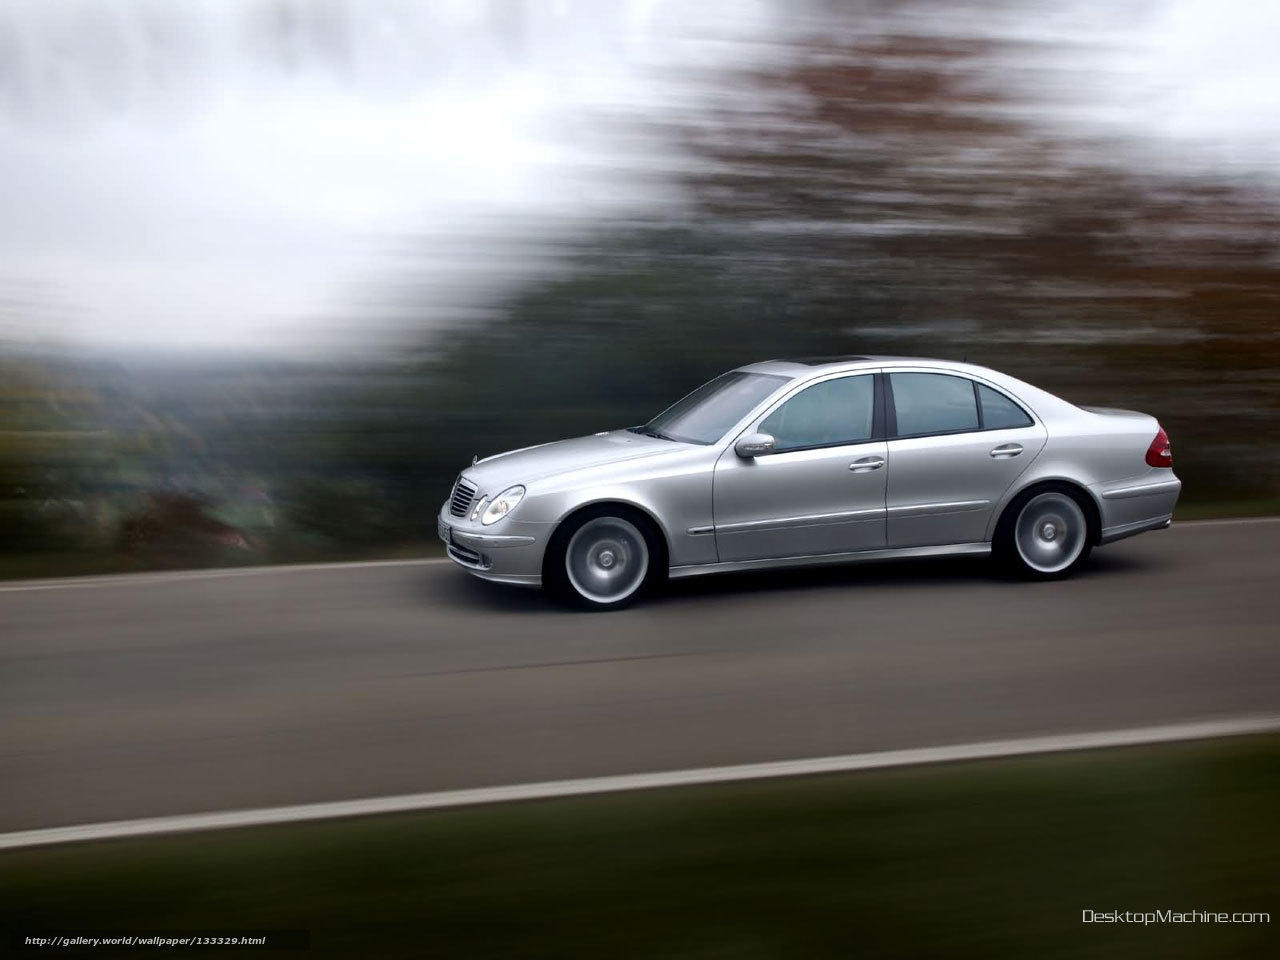 Download Wallpaper Mercedes Benz E Class Car Machinery